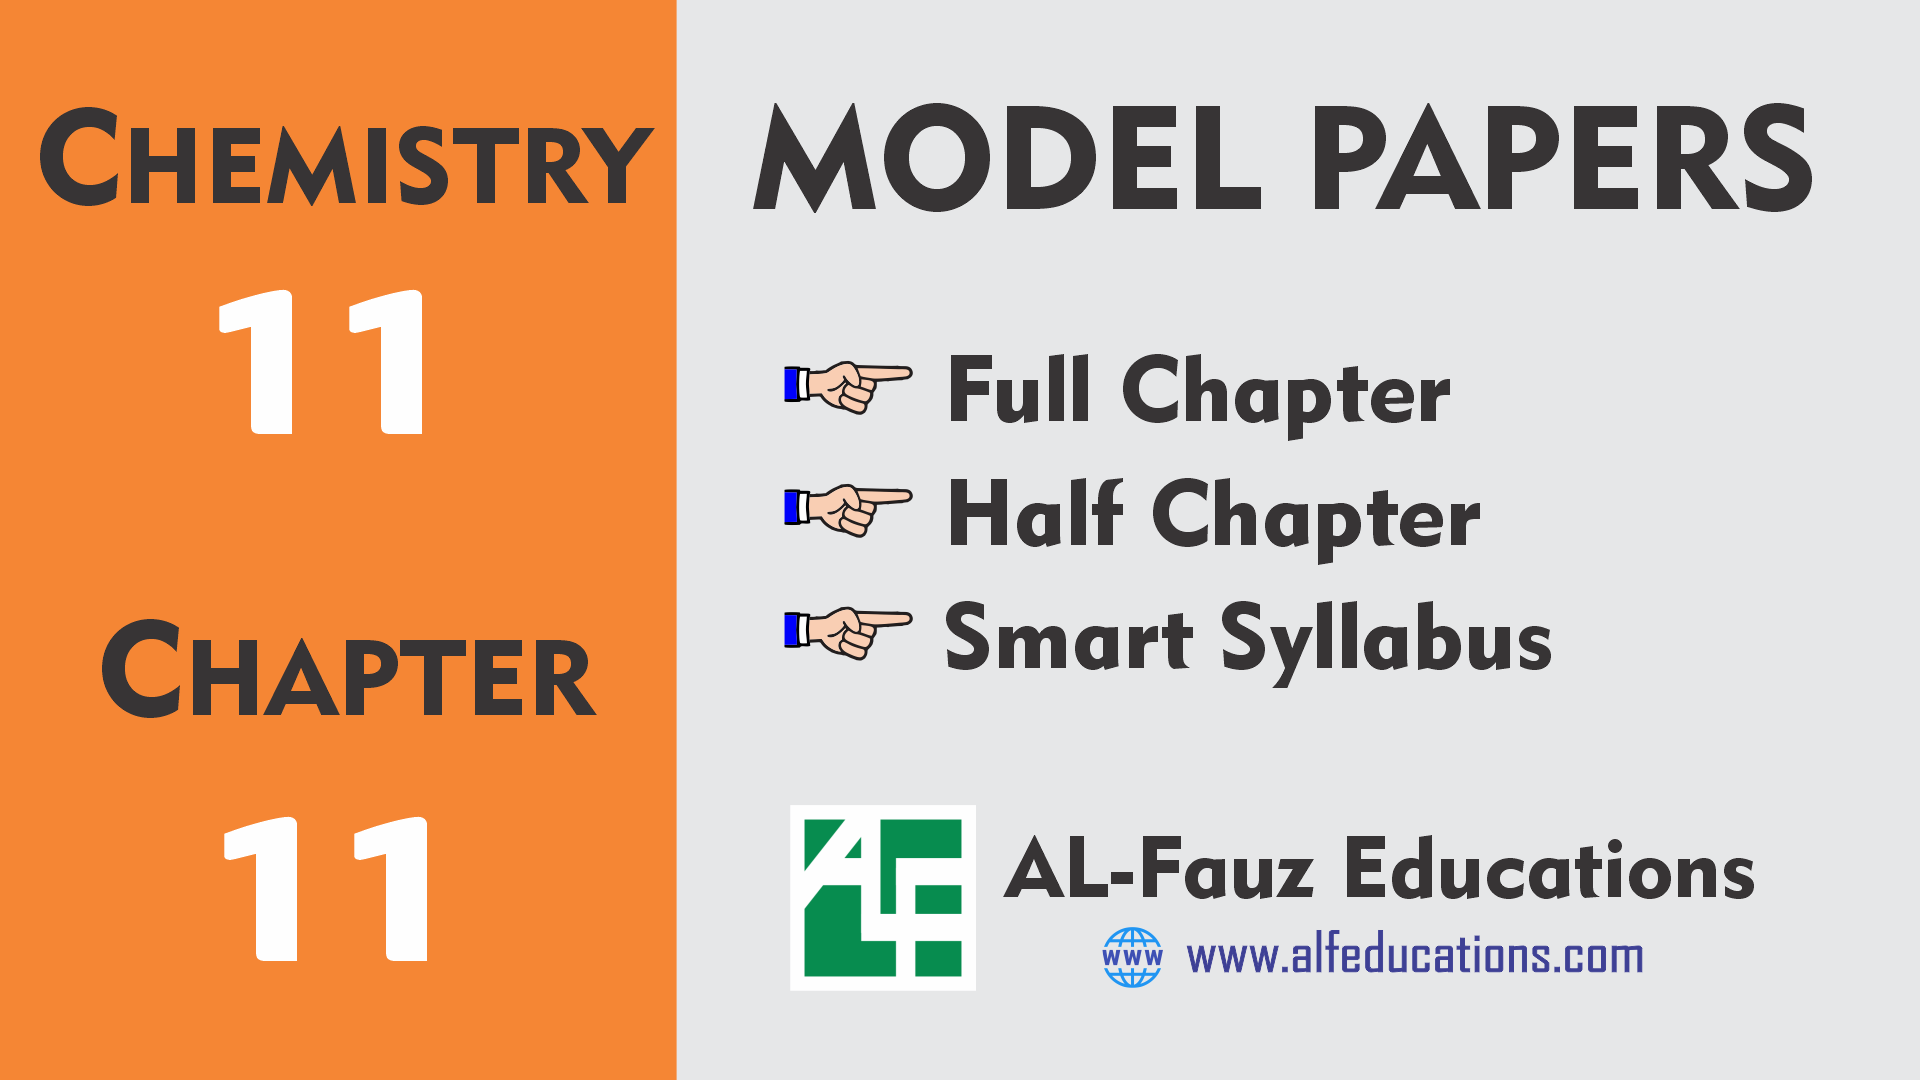 Chemistry 11 Chapter 11, Chemistry 11 Model Papers, Chemistry Chapter 11 Complete, Chemistry Chapter 11 First Half, Chemistry Chapter 11 Second Half, Chemistry Short Syllabus Test, First Half Chapter 11, Full Chapter, Half Chapter, Punjab Textbook Board, Second Half Chapter 11